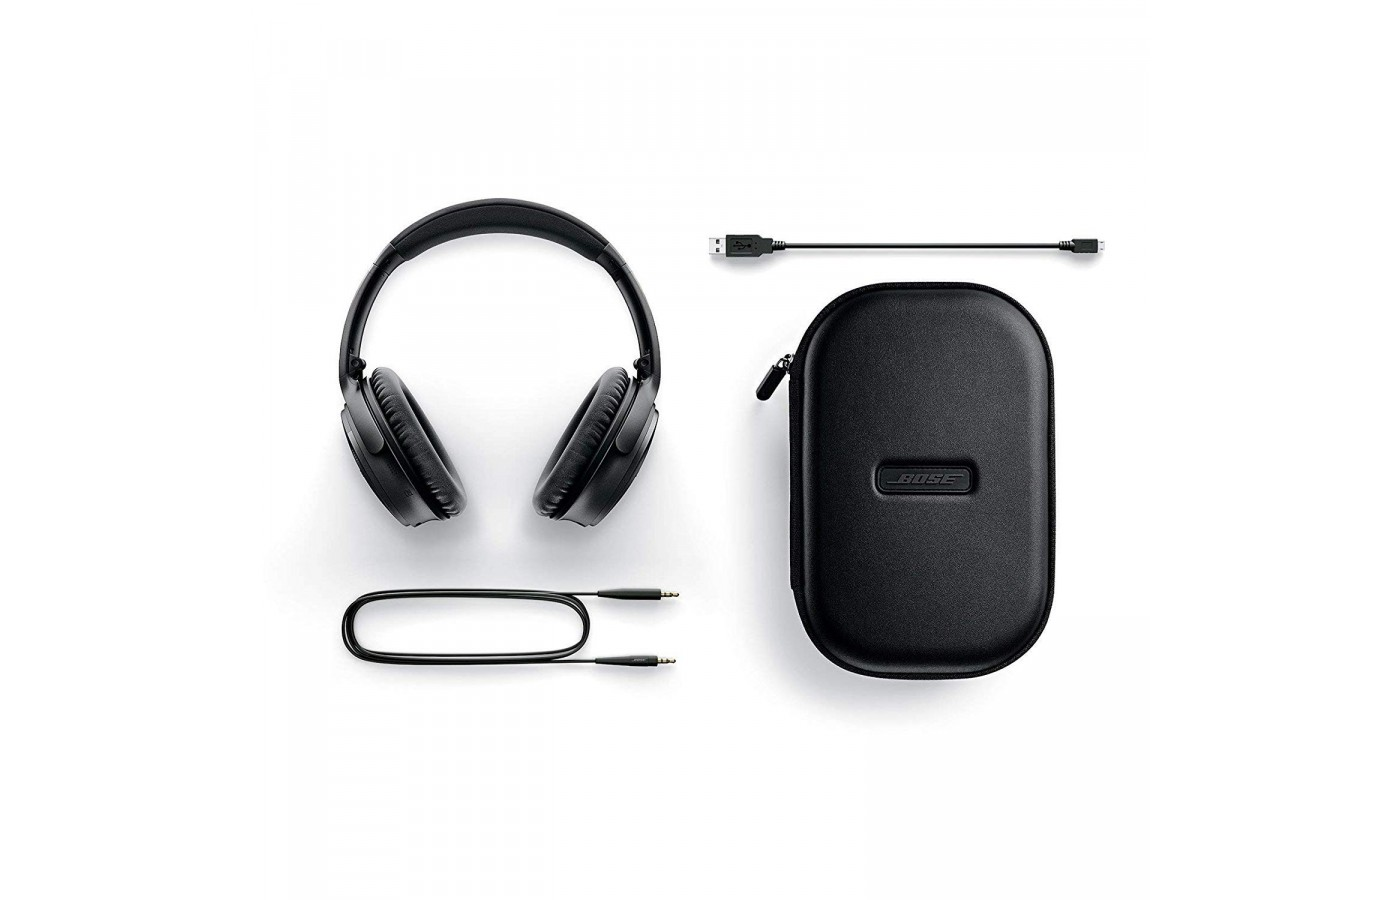 Bose QuietComfort 35 II accessories